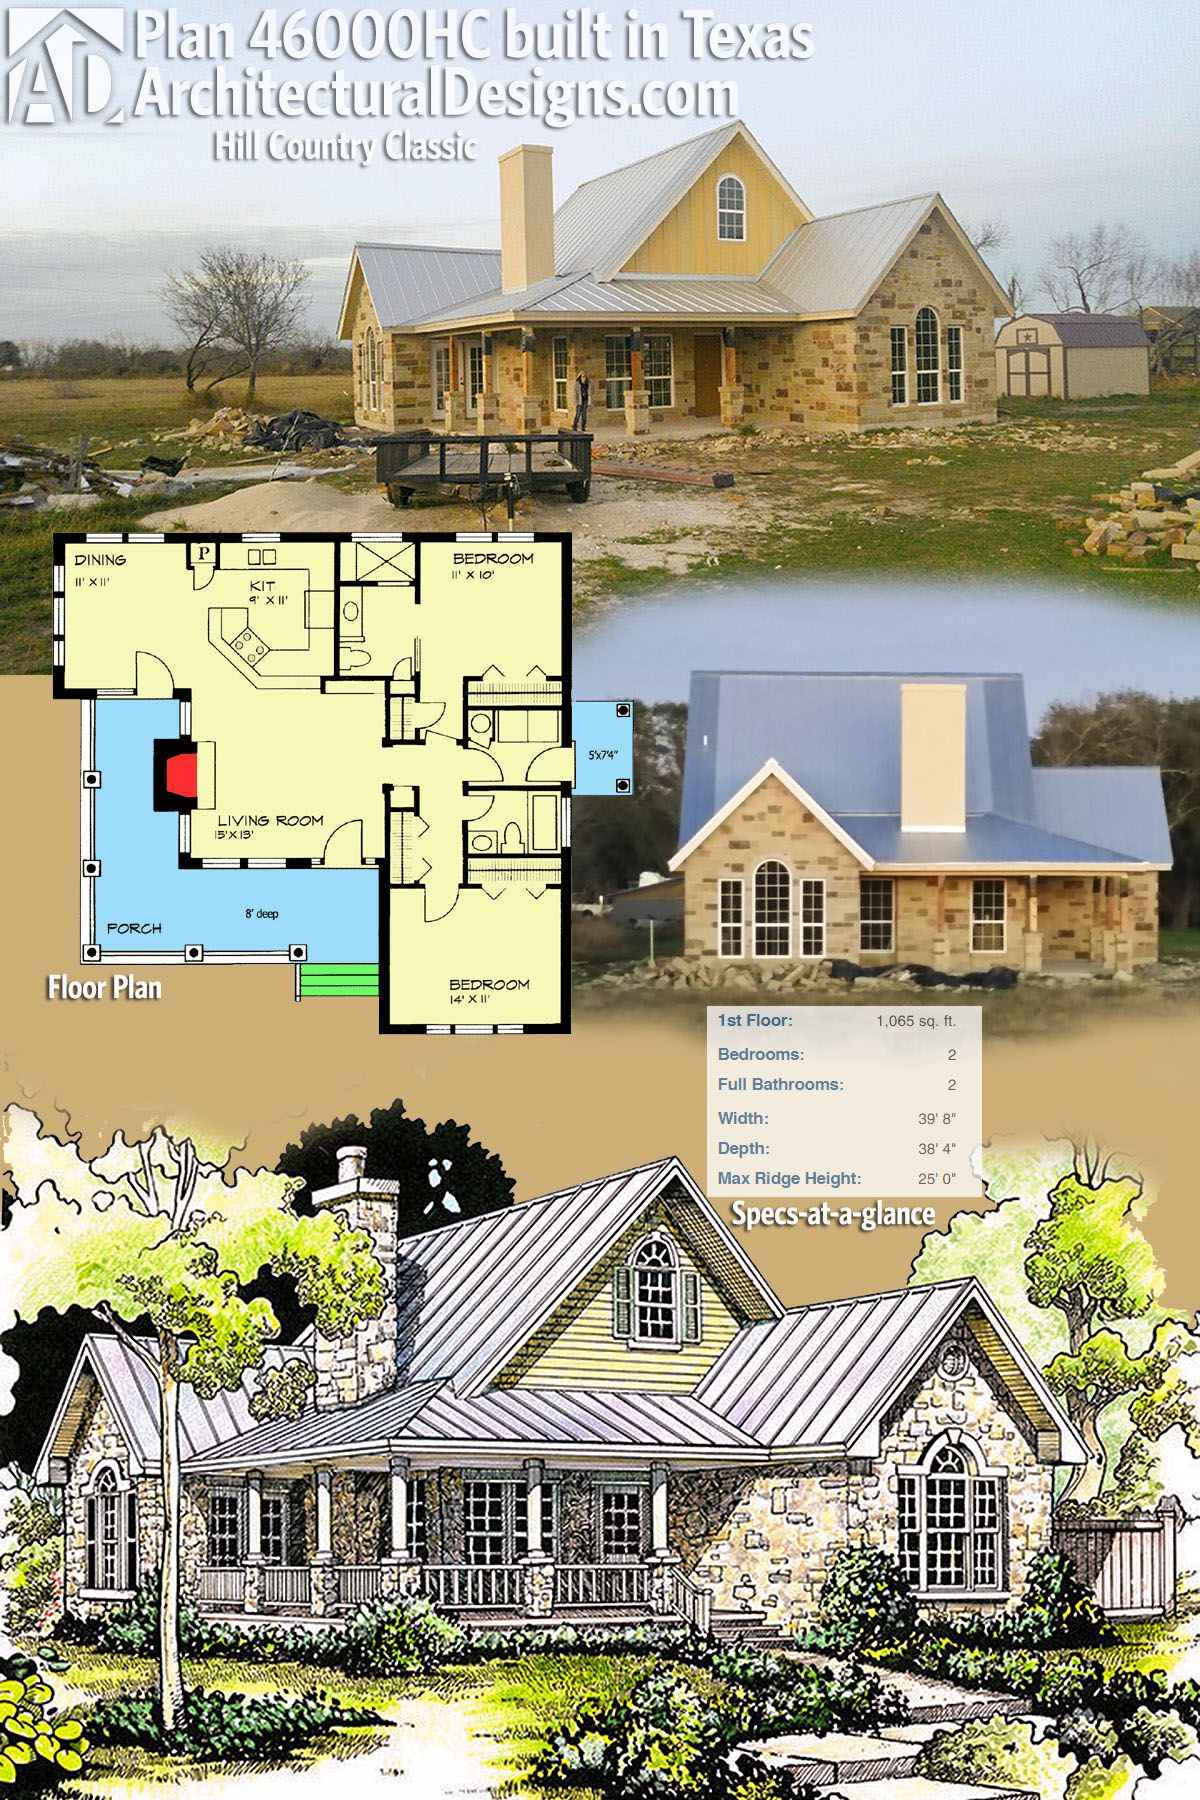 Plan 46000hc Hill Country Classic Country House Plans Hill Country Homes Country House Design